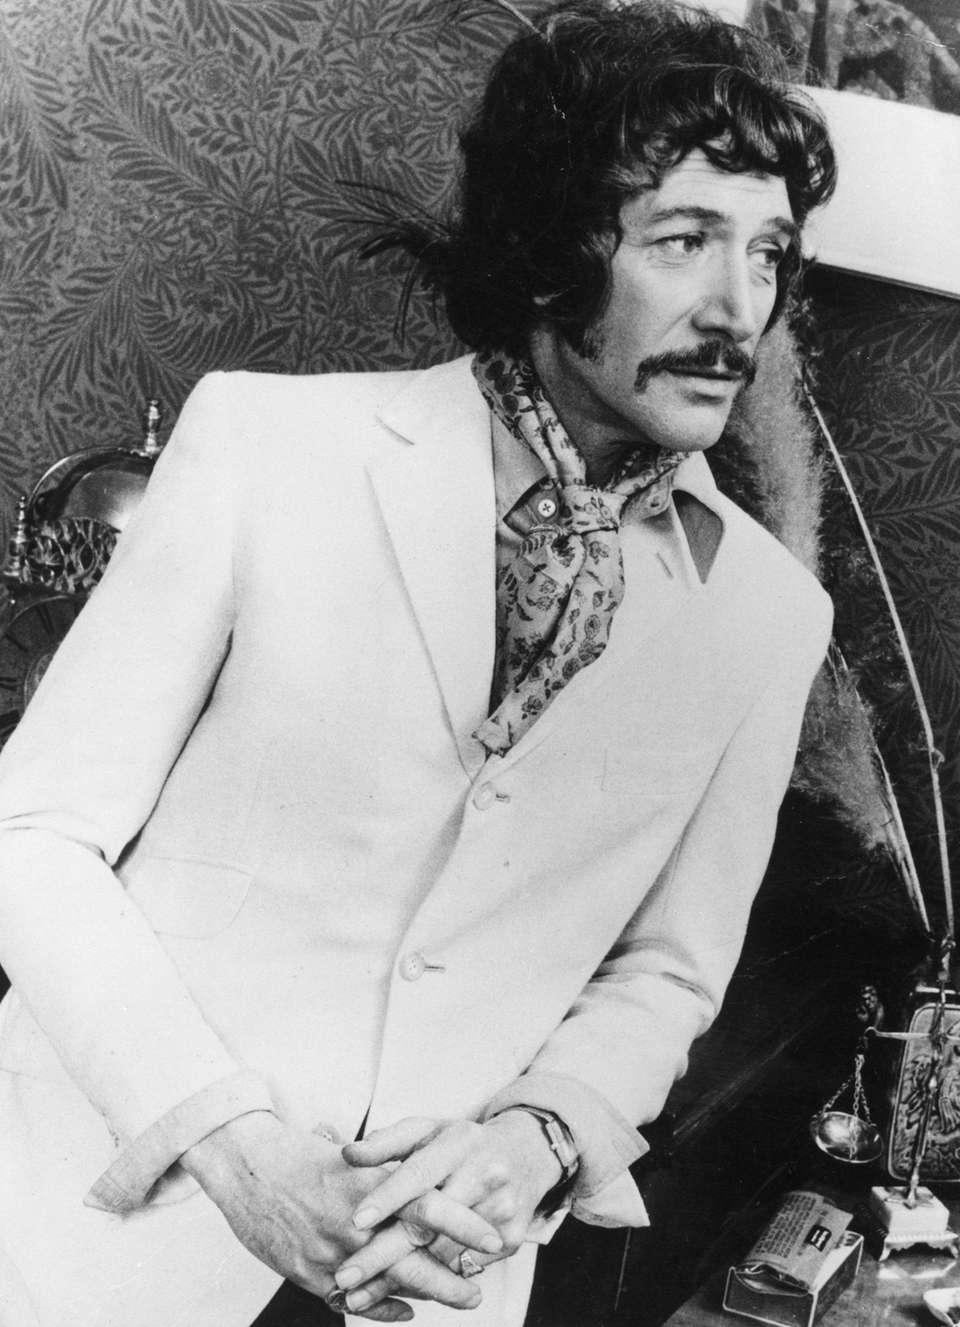 British actor Peter Wyngarde. (Photo by Keystone/Getty Images)